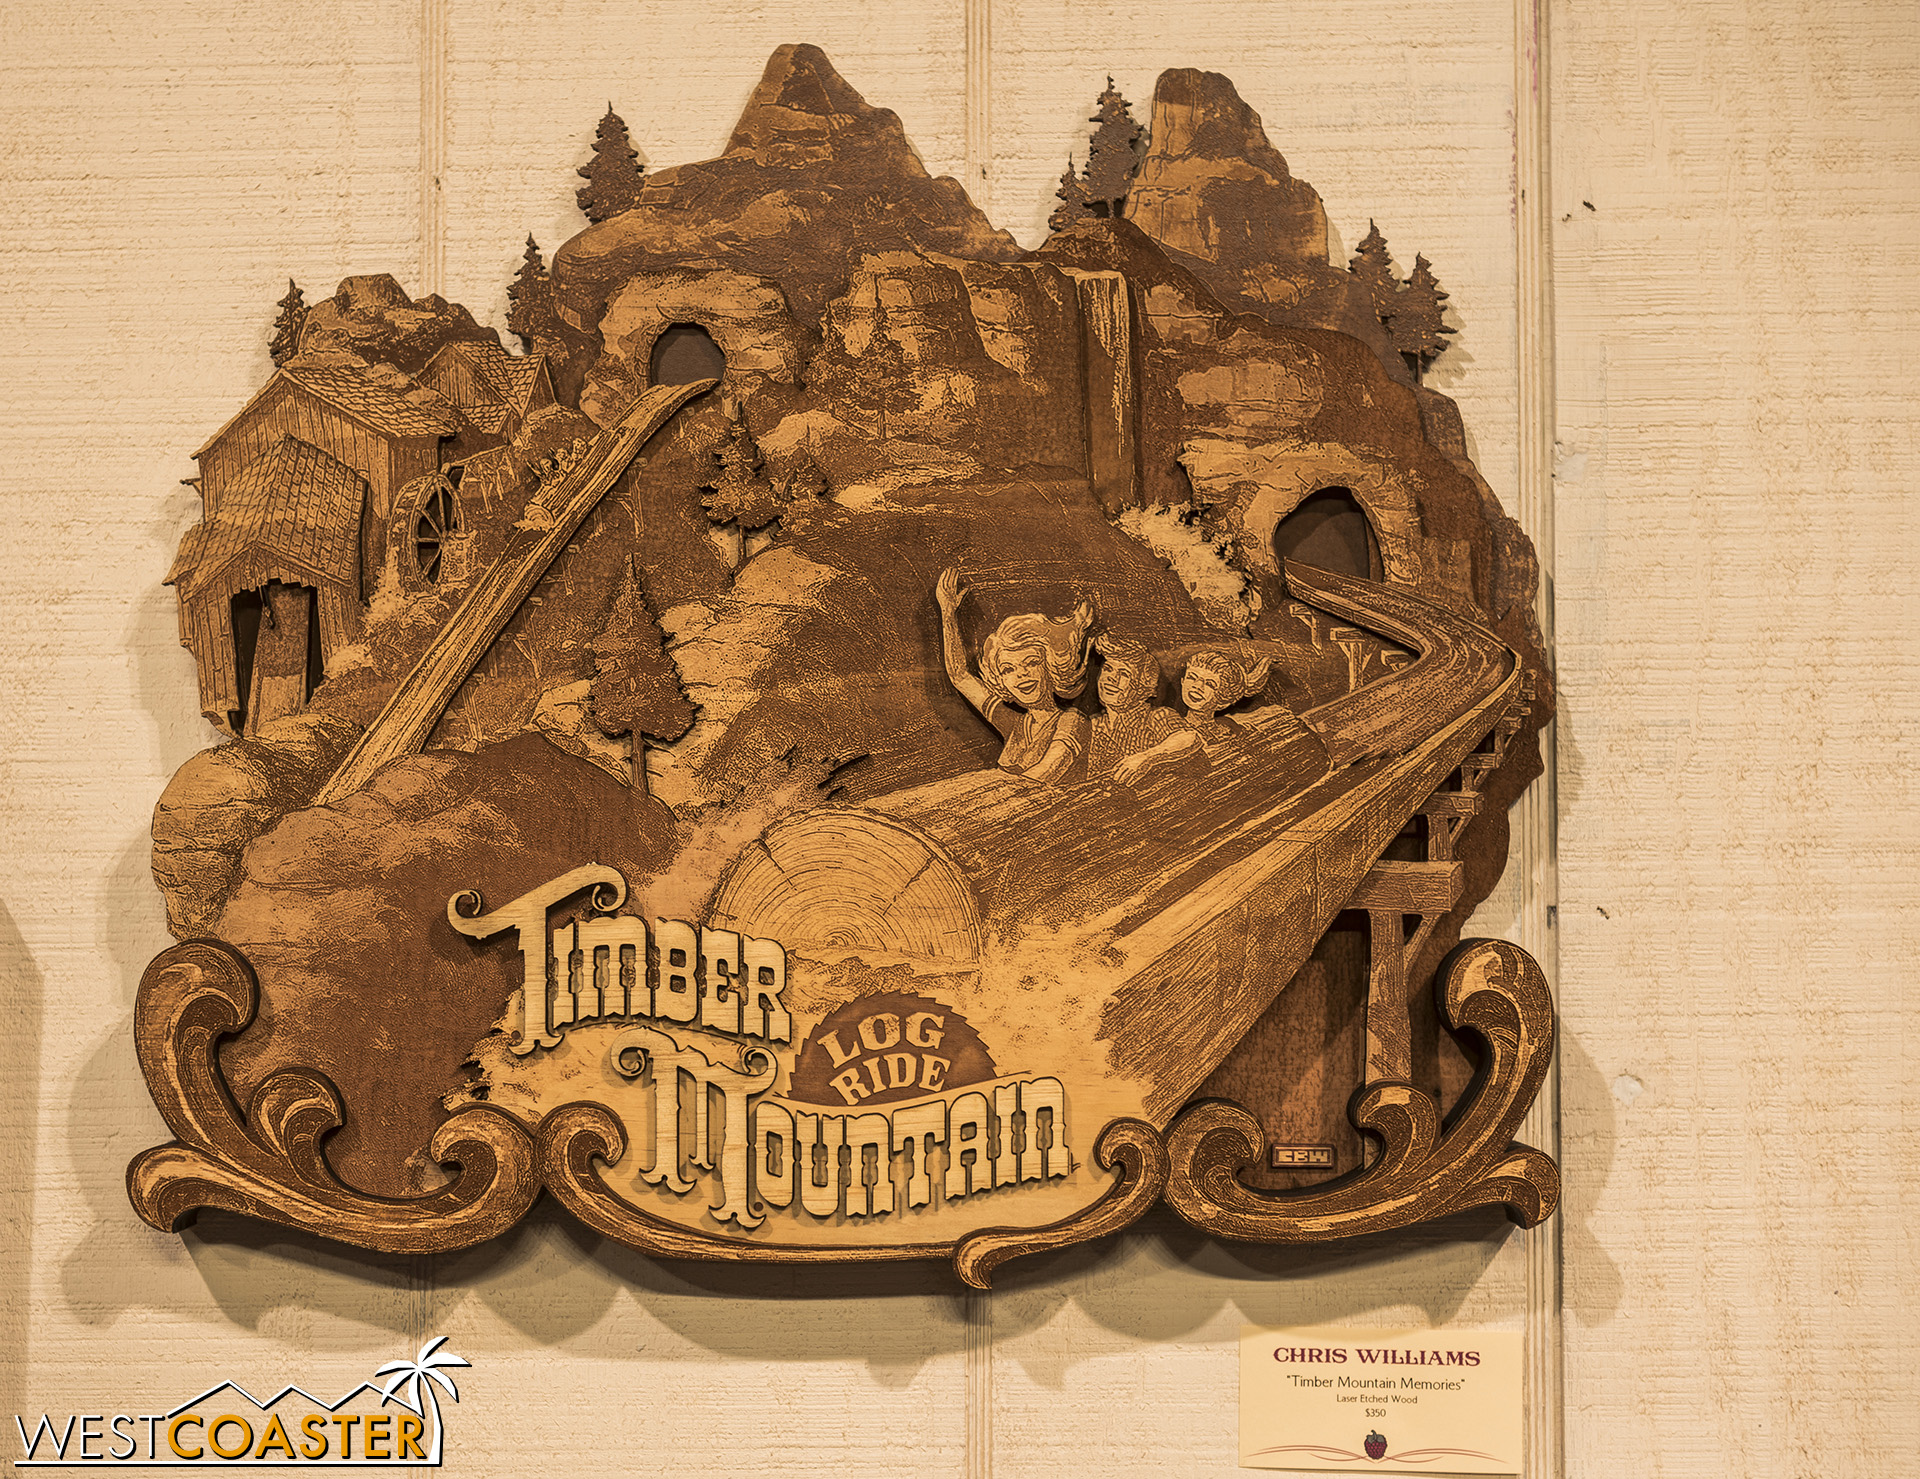 A woodcut of the Log Ride is certainly fitting.